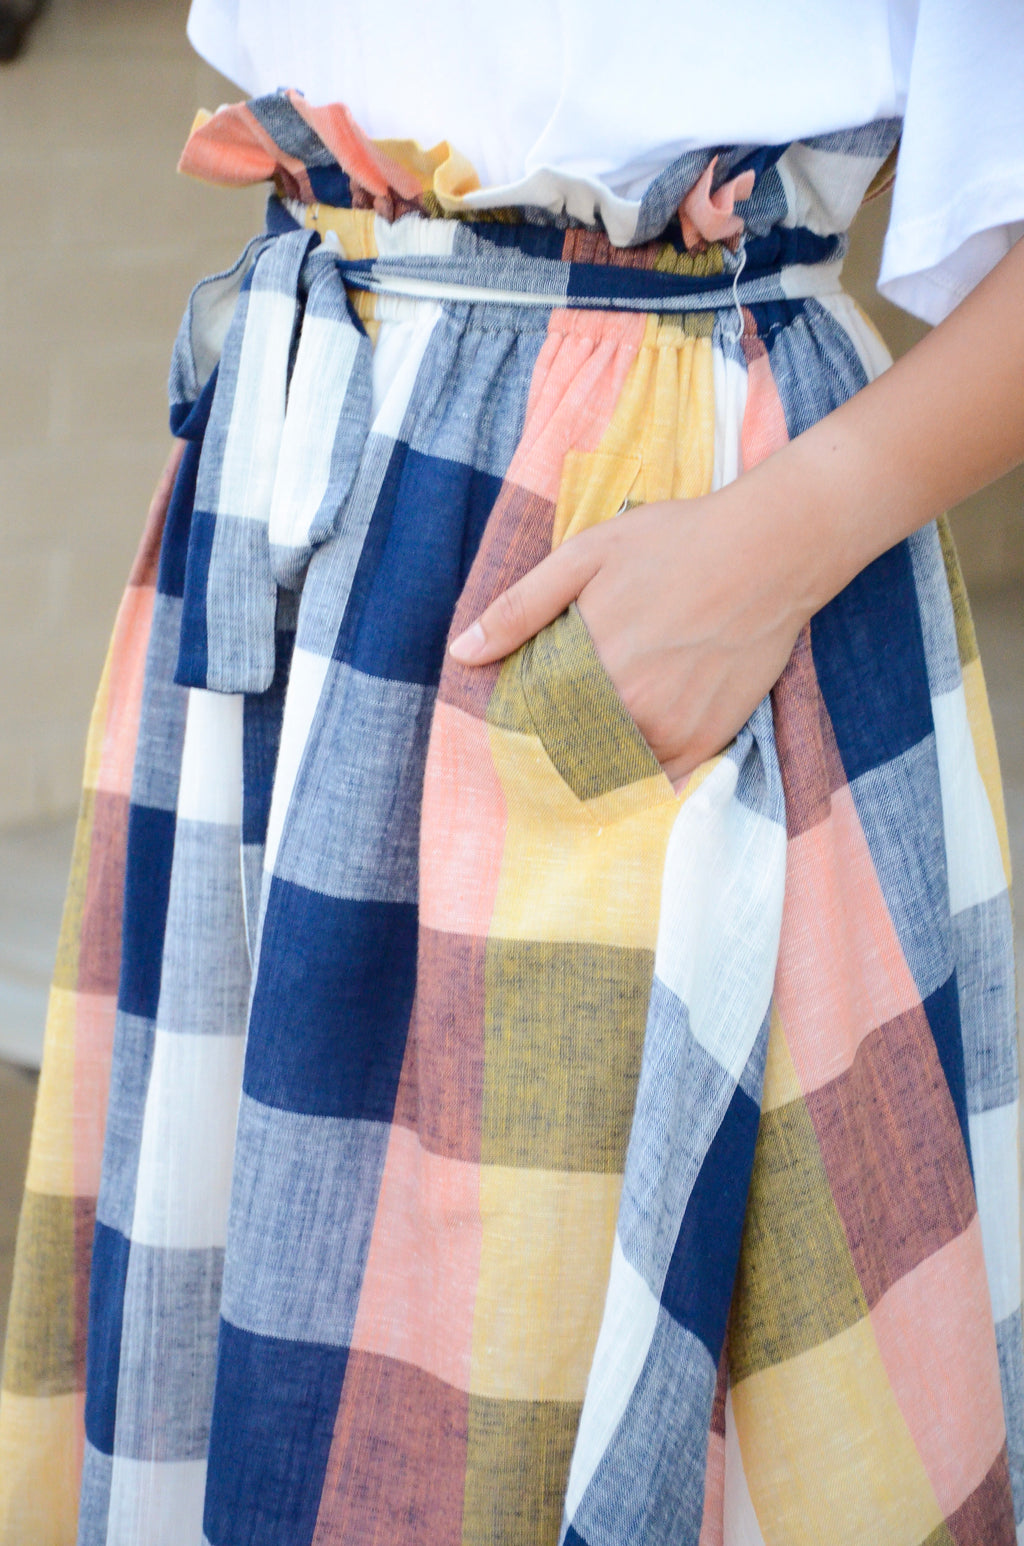 The Golden Summer Plaid Skirt